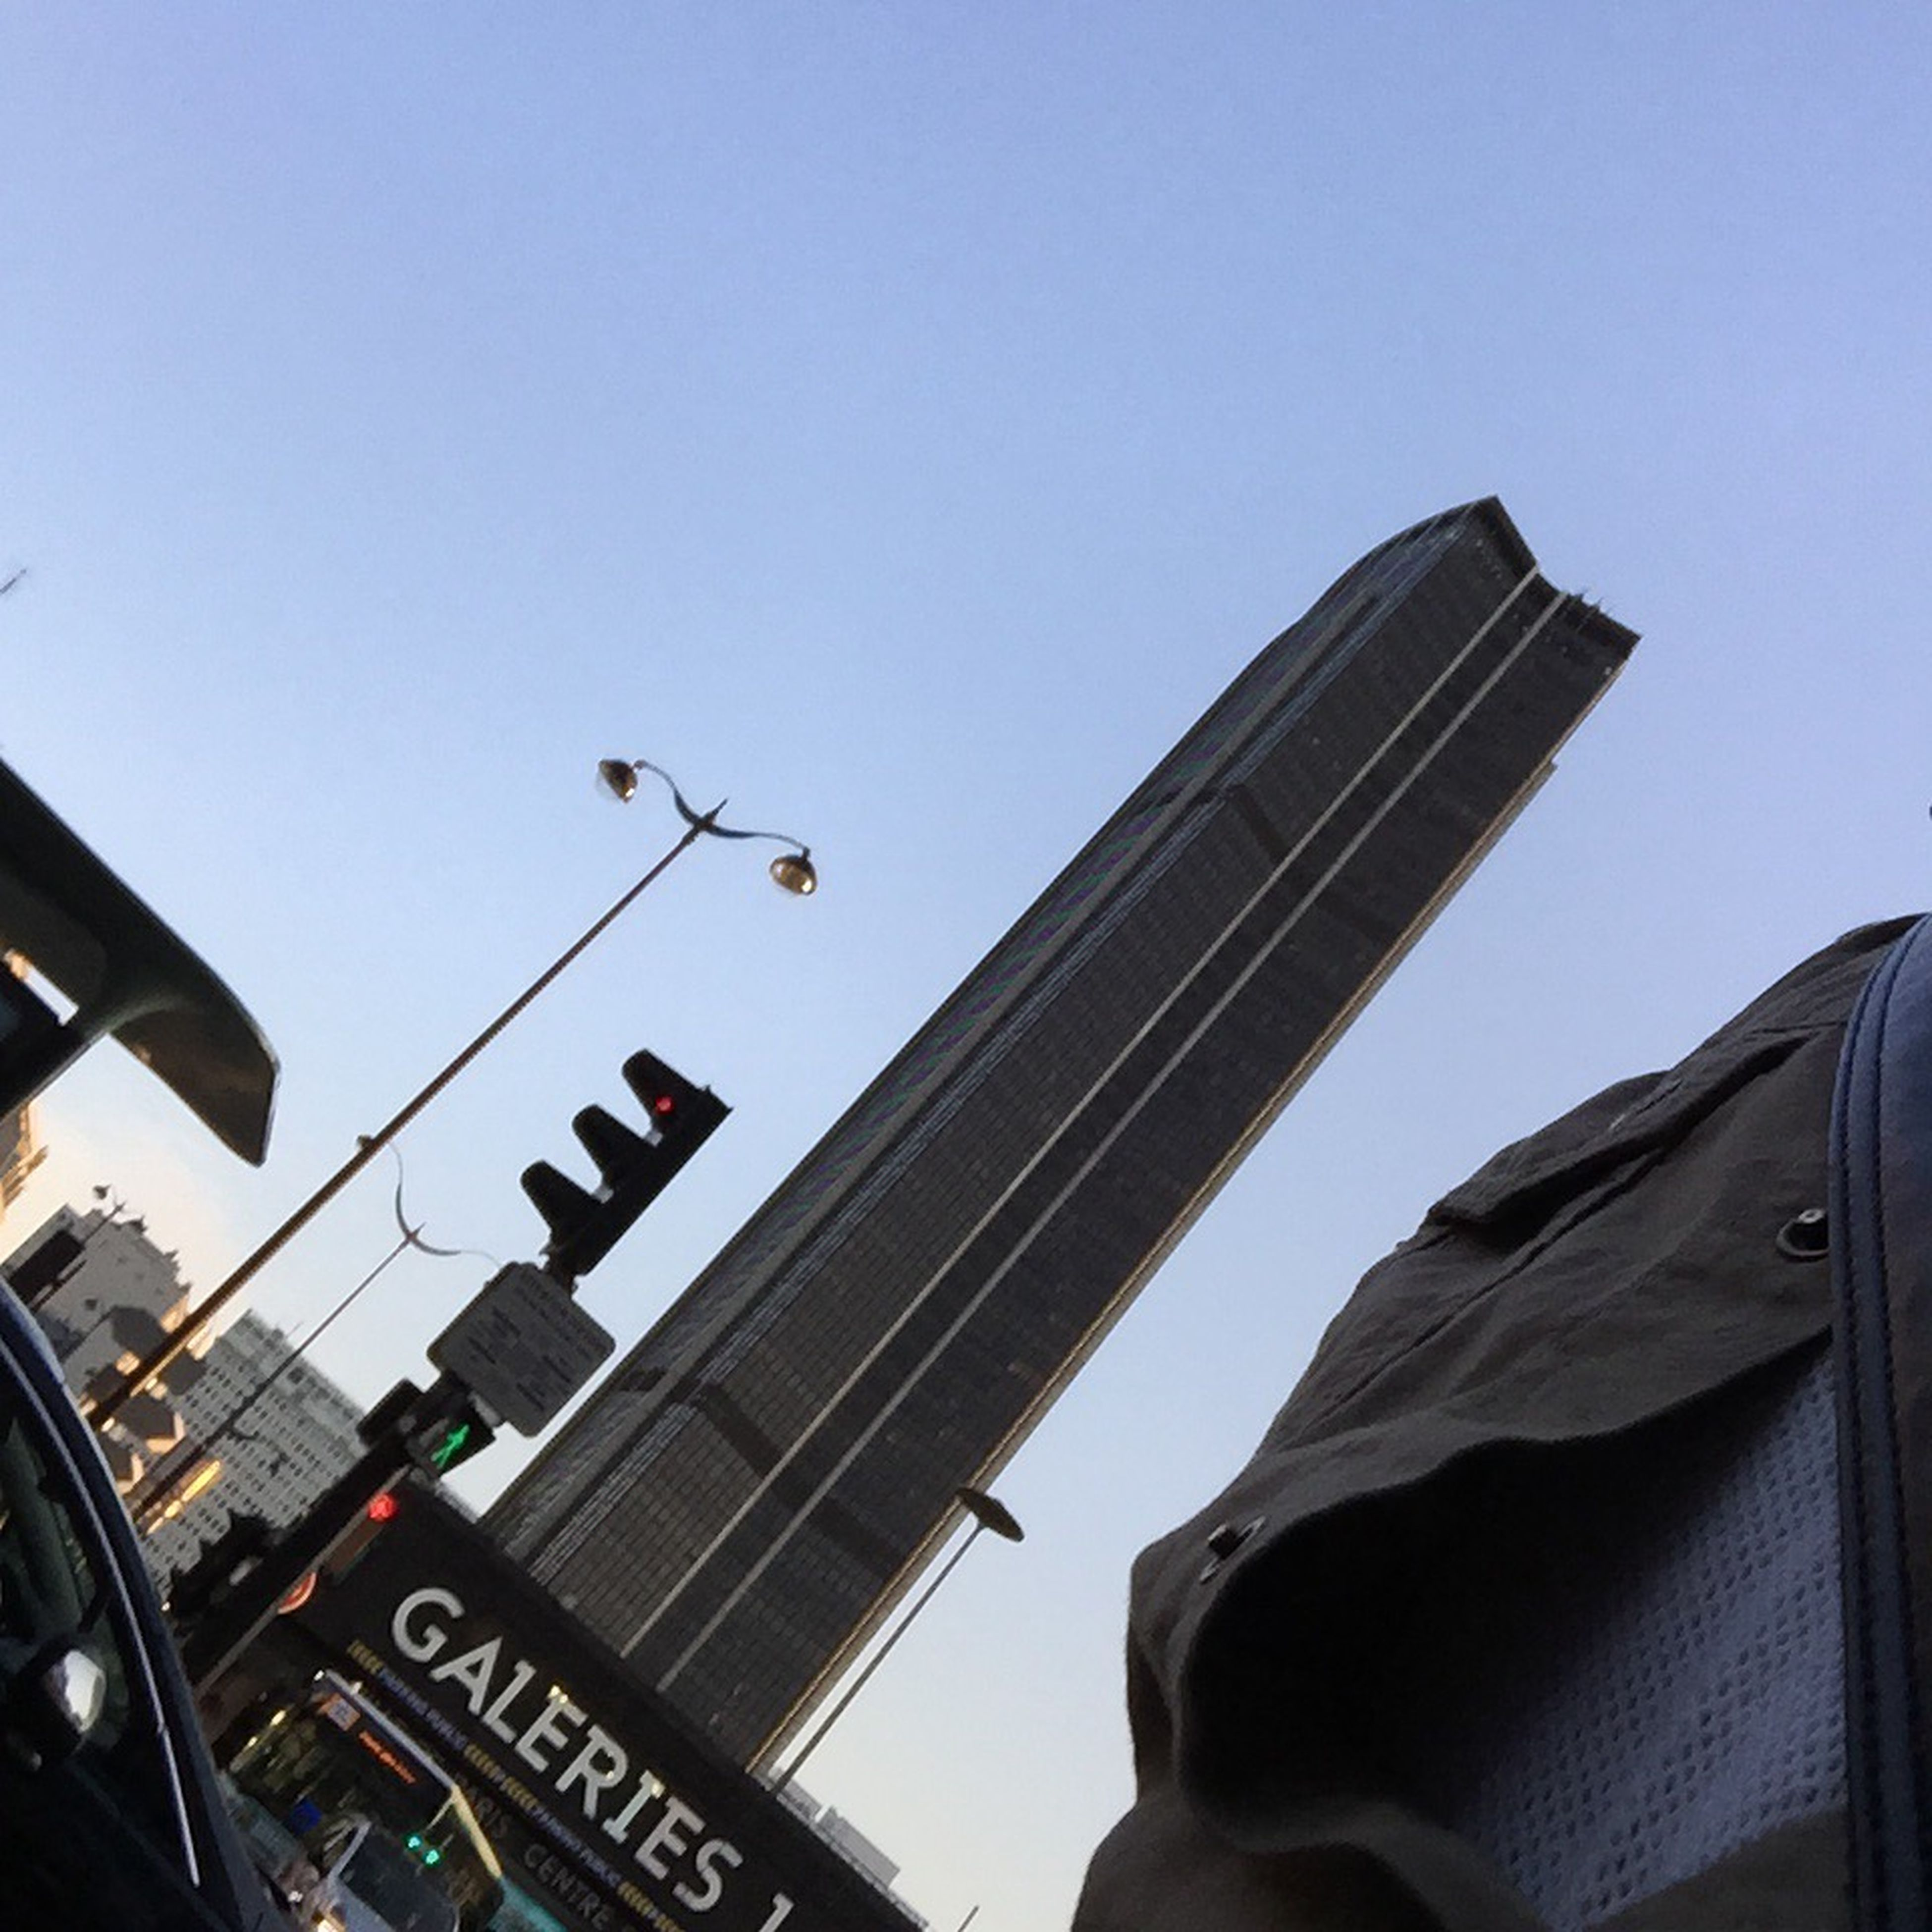 low angle view, clear sky, architecture, building exterior, built structure, transportation, city, communication, car, text, mode of transport, copy space, western script, land vehicle, blue, day, tower, skyscraper, tall - high, travel